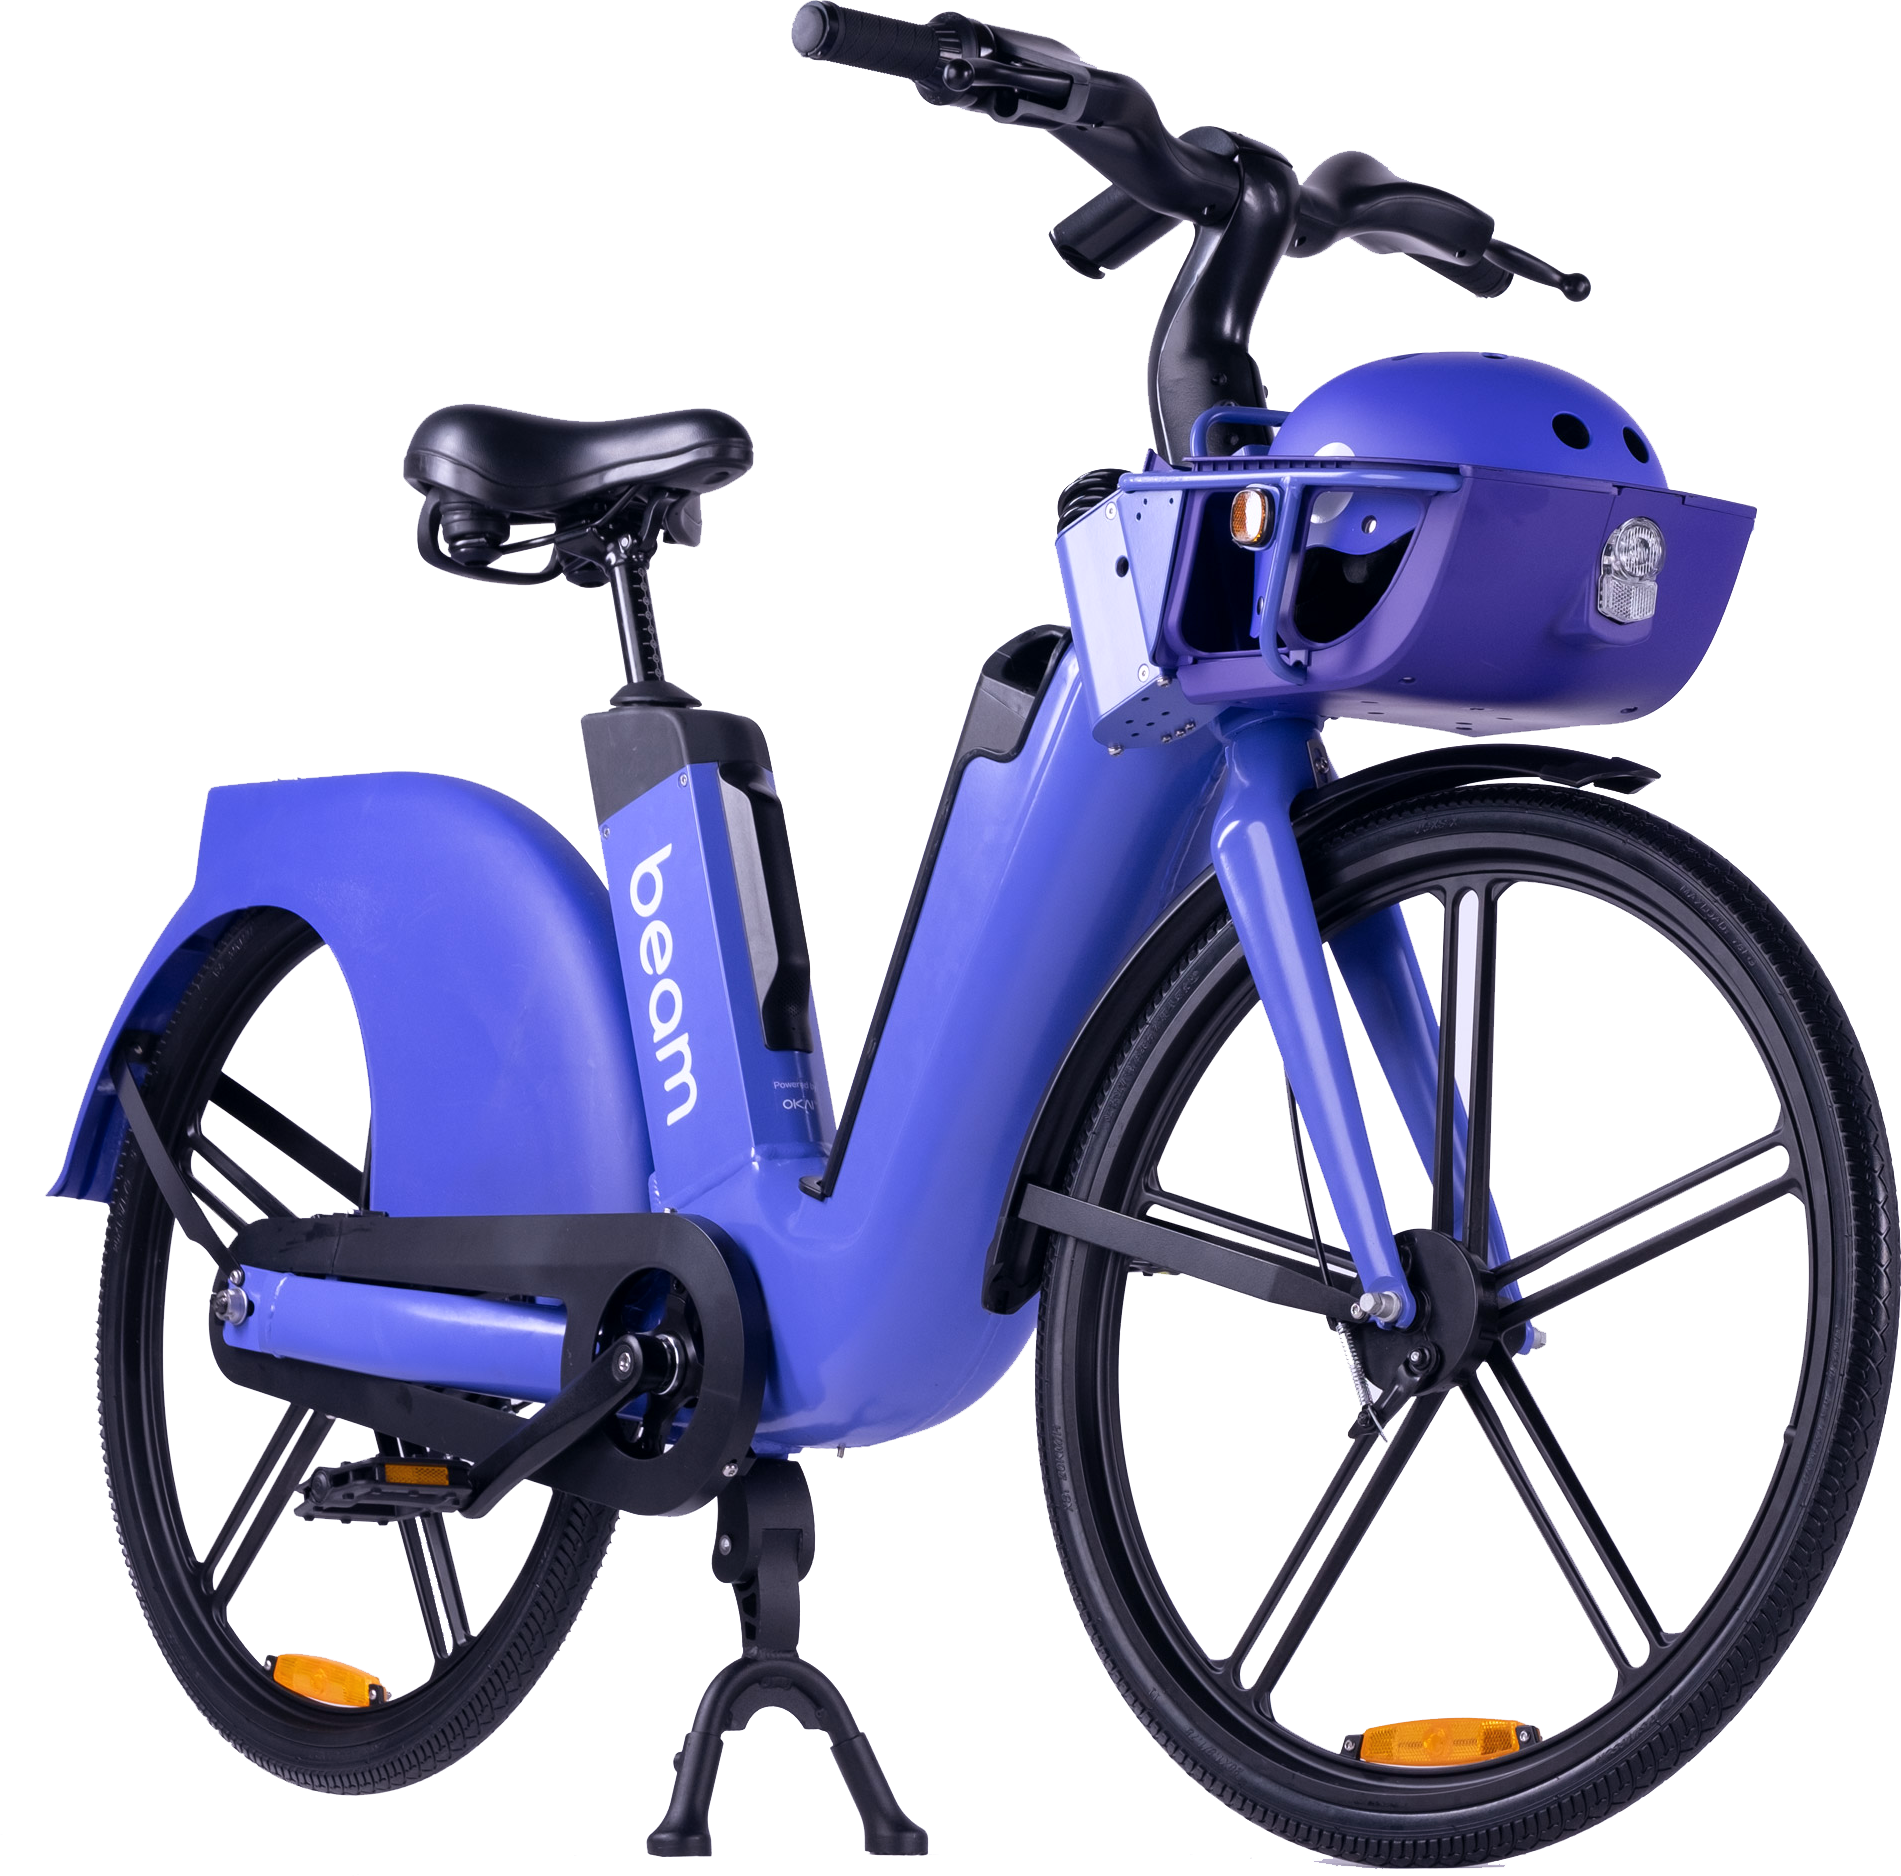 Beam Apollo Purple bike